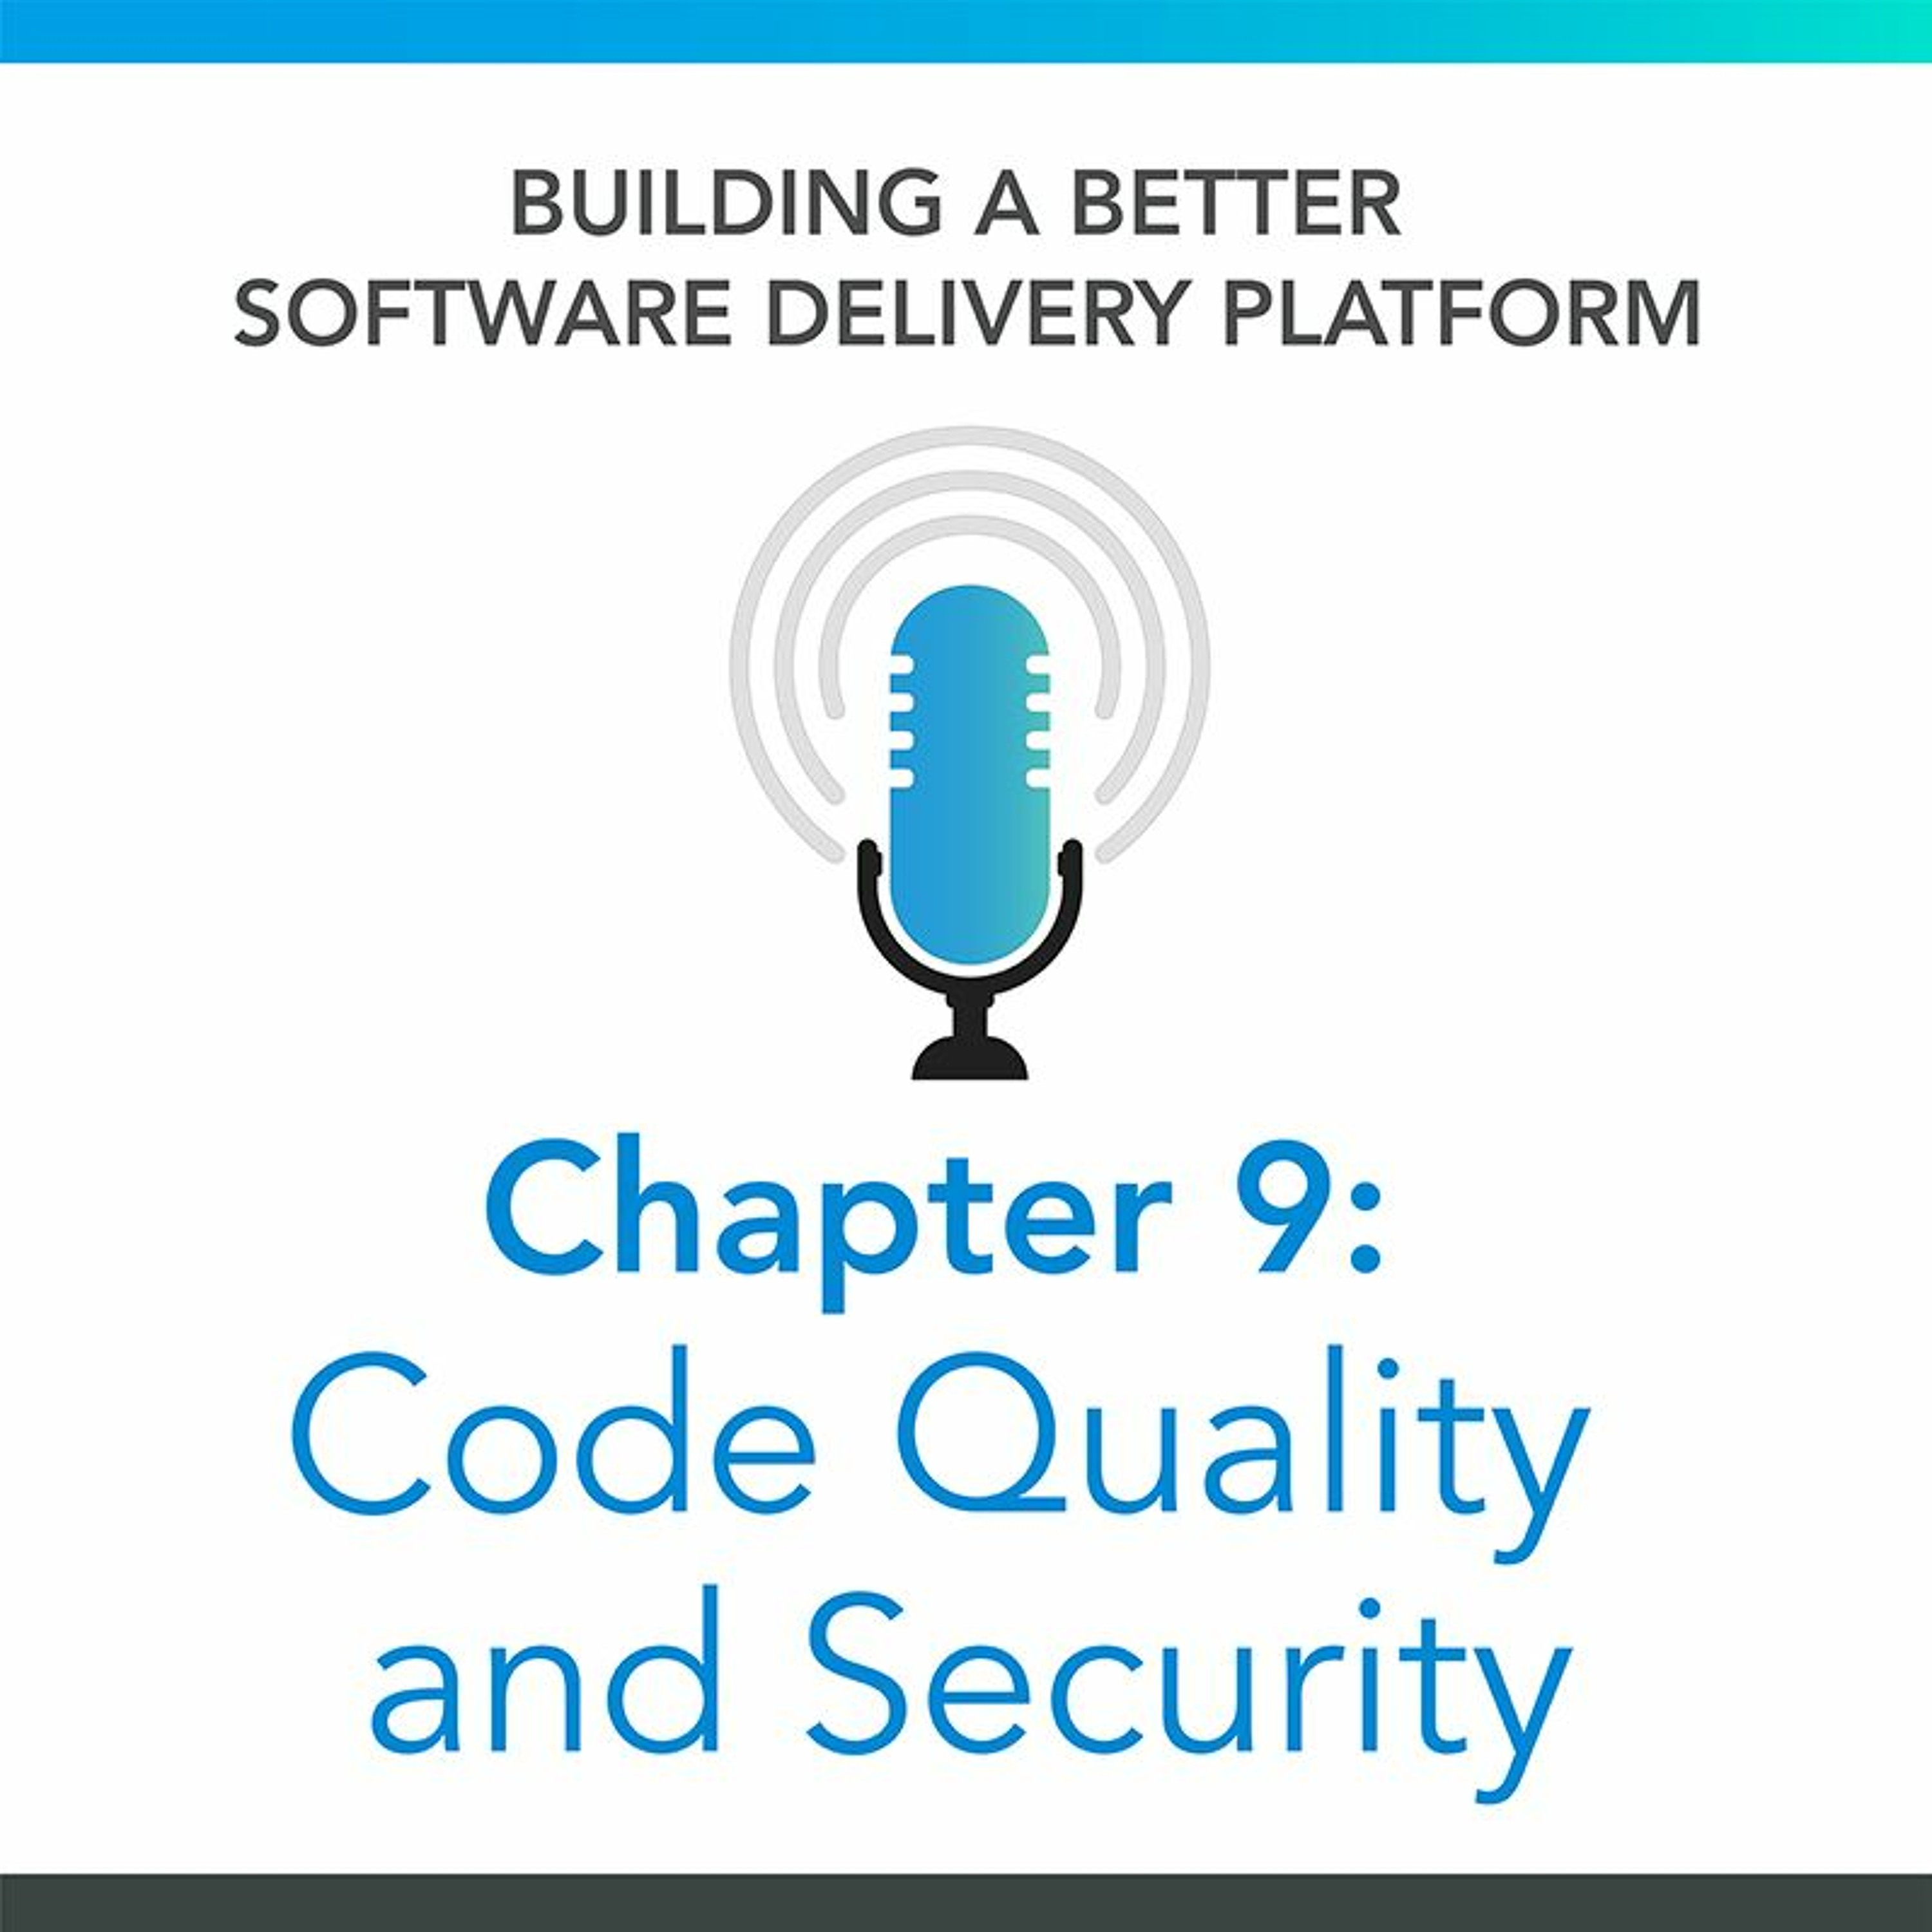 Chapter 9: Code Quality And Security